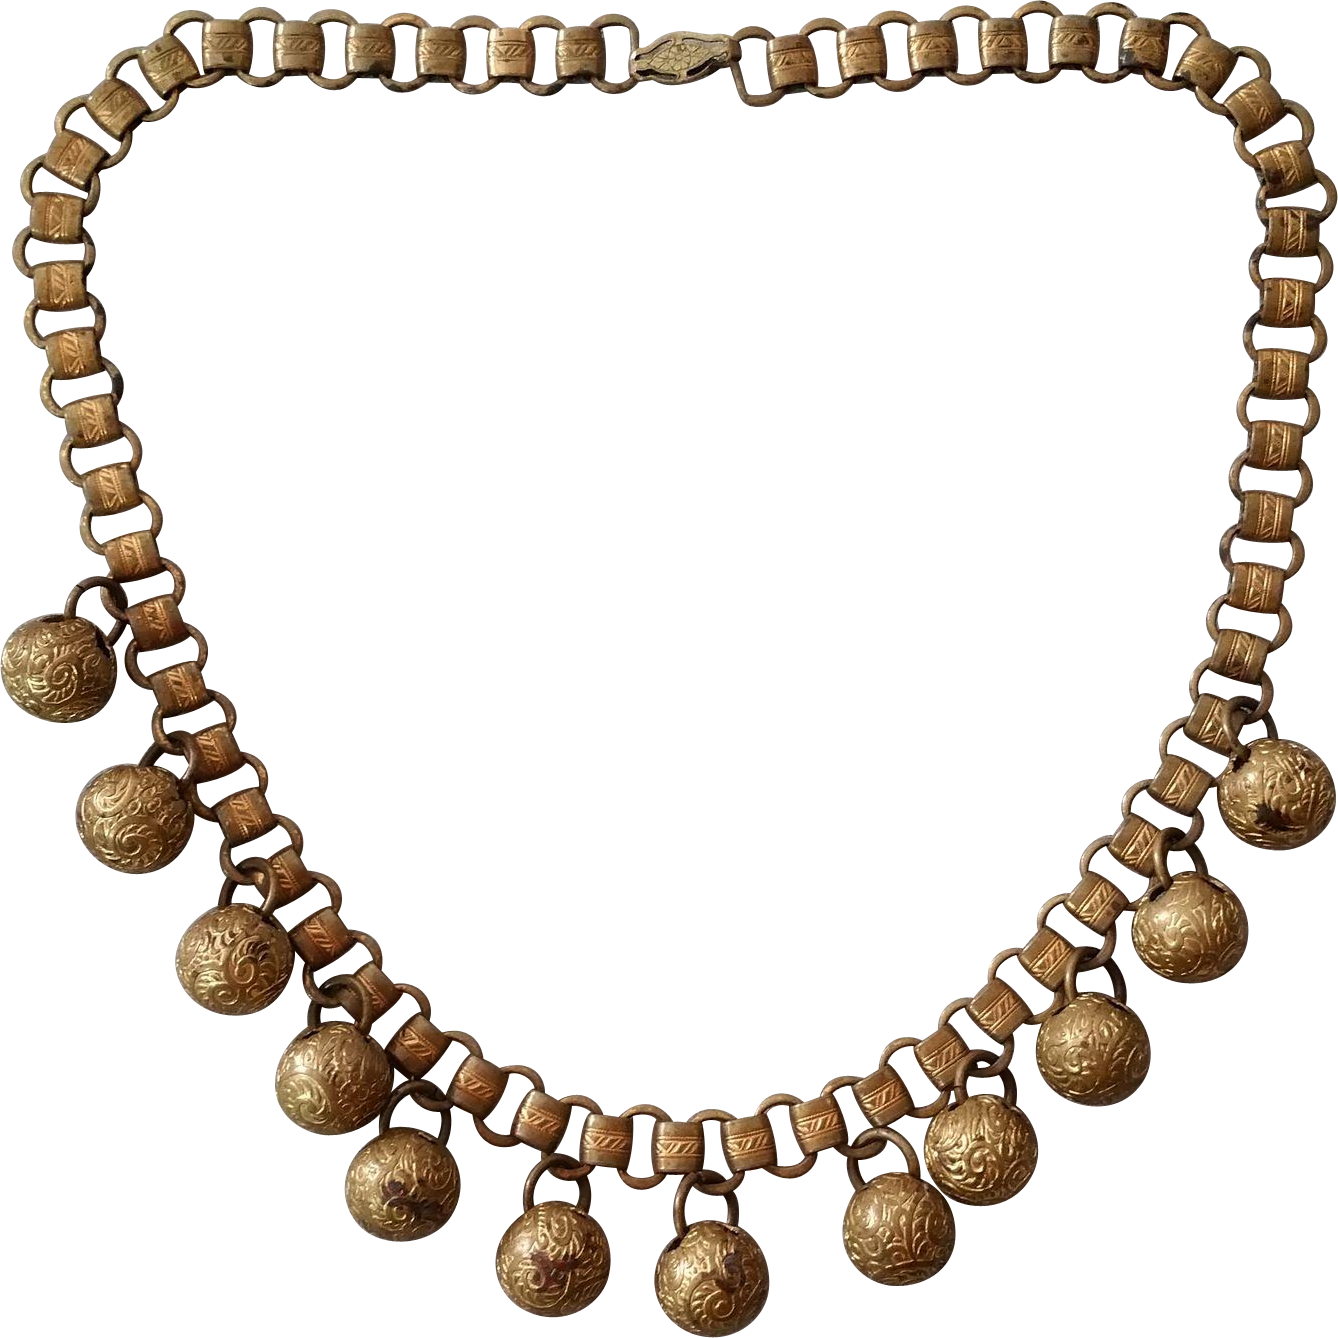 Bookchain Necklace with 12 Very Ornate Brass 4-hole Ball Buttons Hung as Dangle Beads